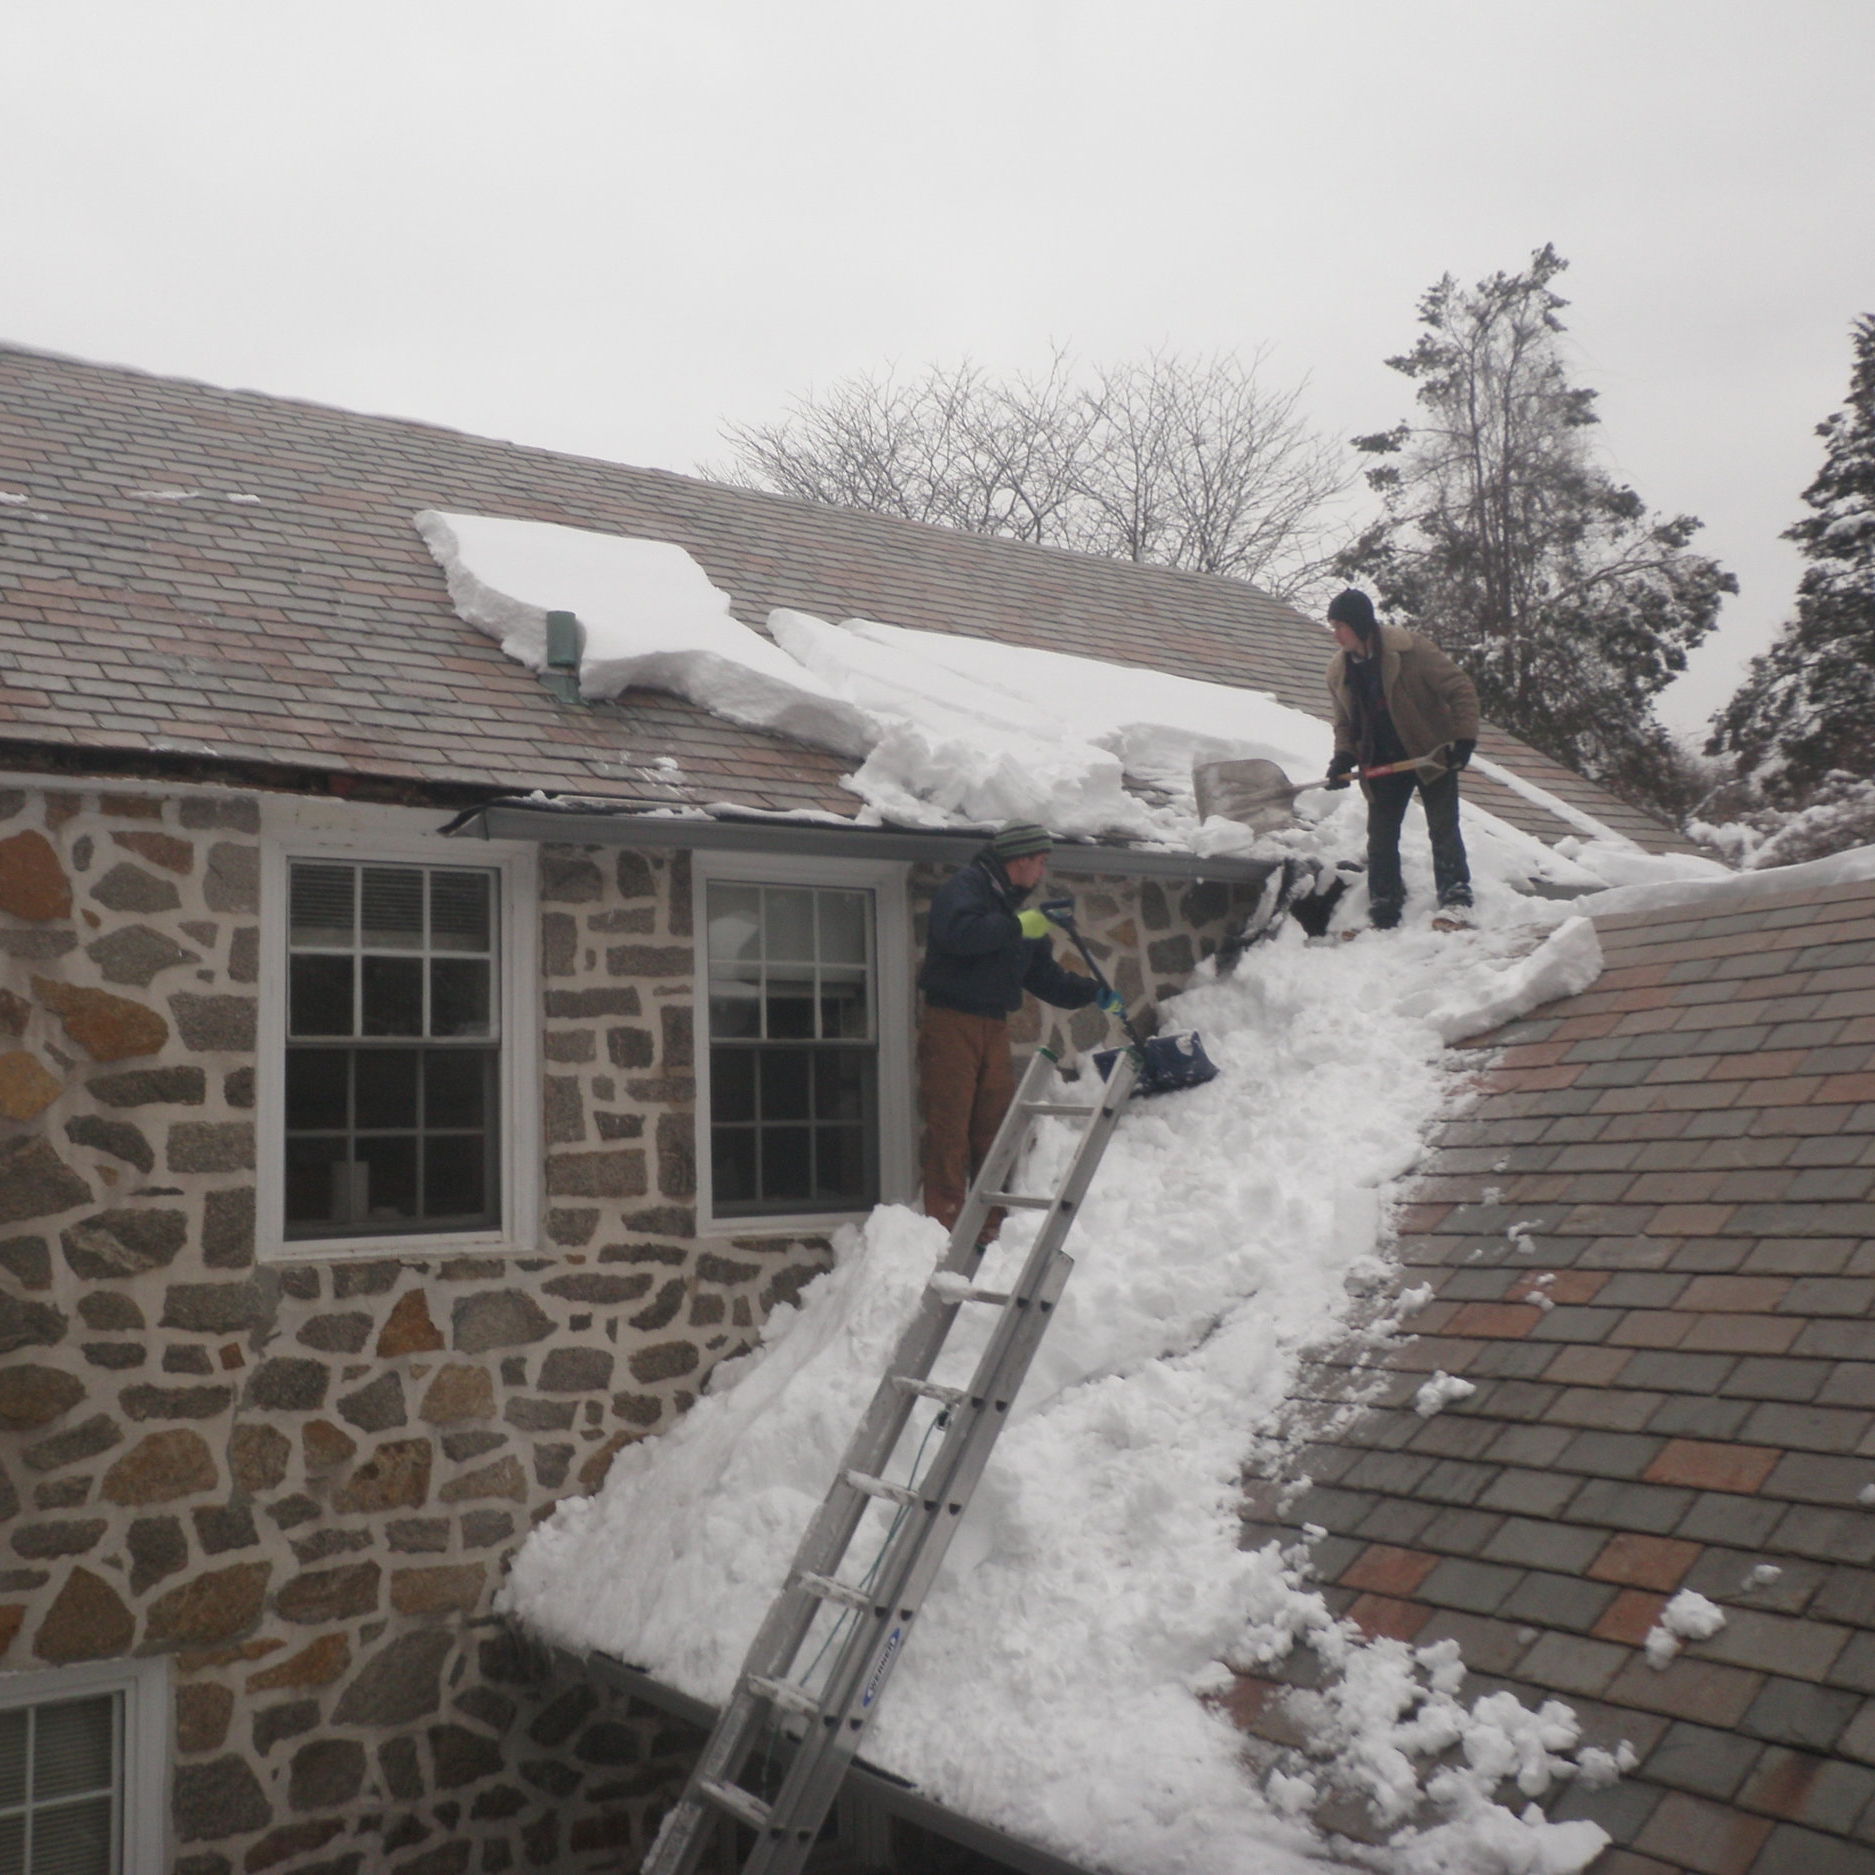 Emergency snow removal service for a customer affected by the historic blizzard of 2010. If snow guards had been installed along the starter courses, such drifts of heavy, wet snow probably would not have amassed, melted, and later refrozen over the once noble and now malformed gutters / fascia –especially on the upper roof, to the left.